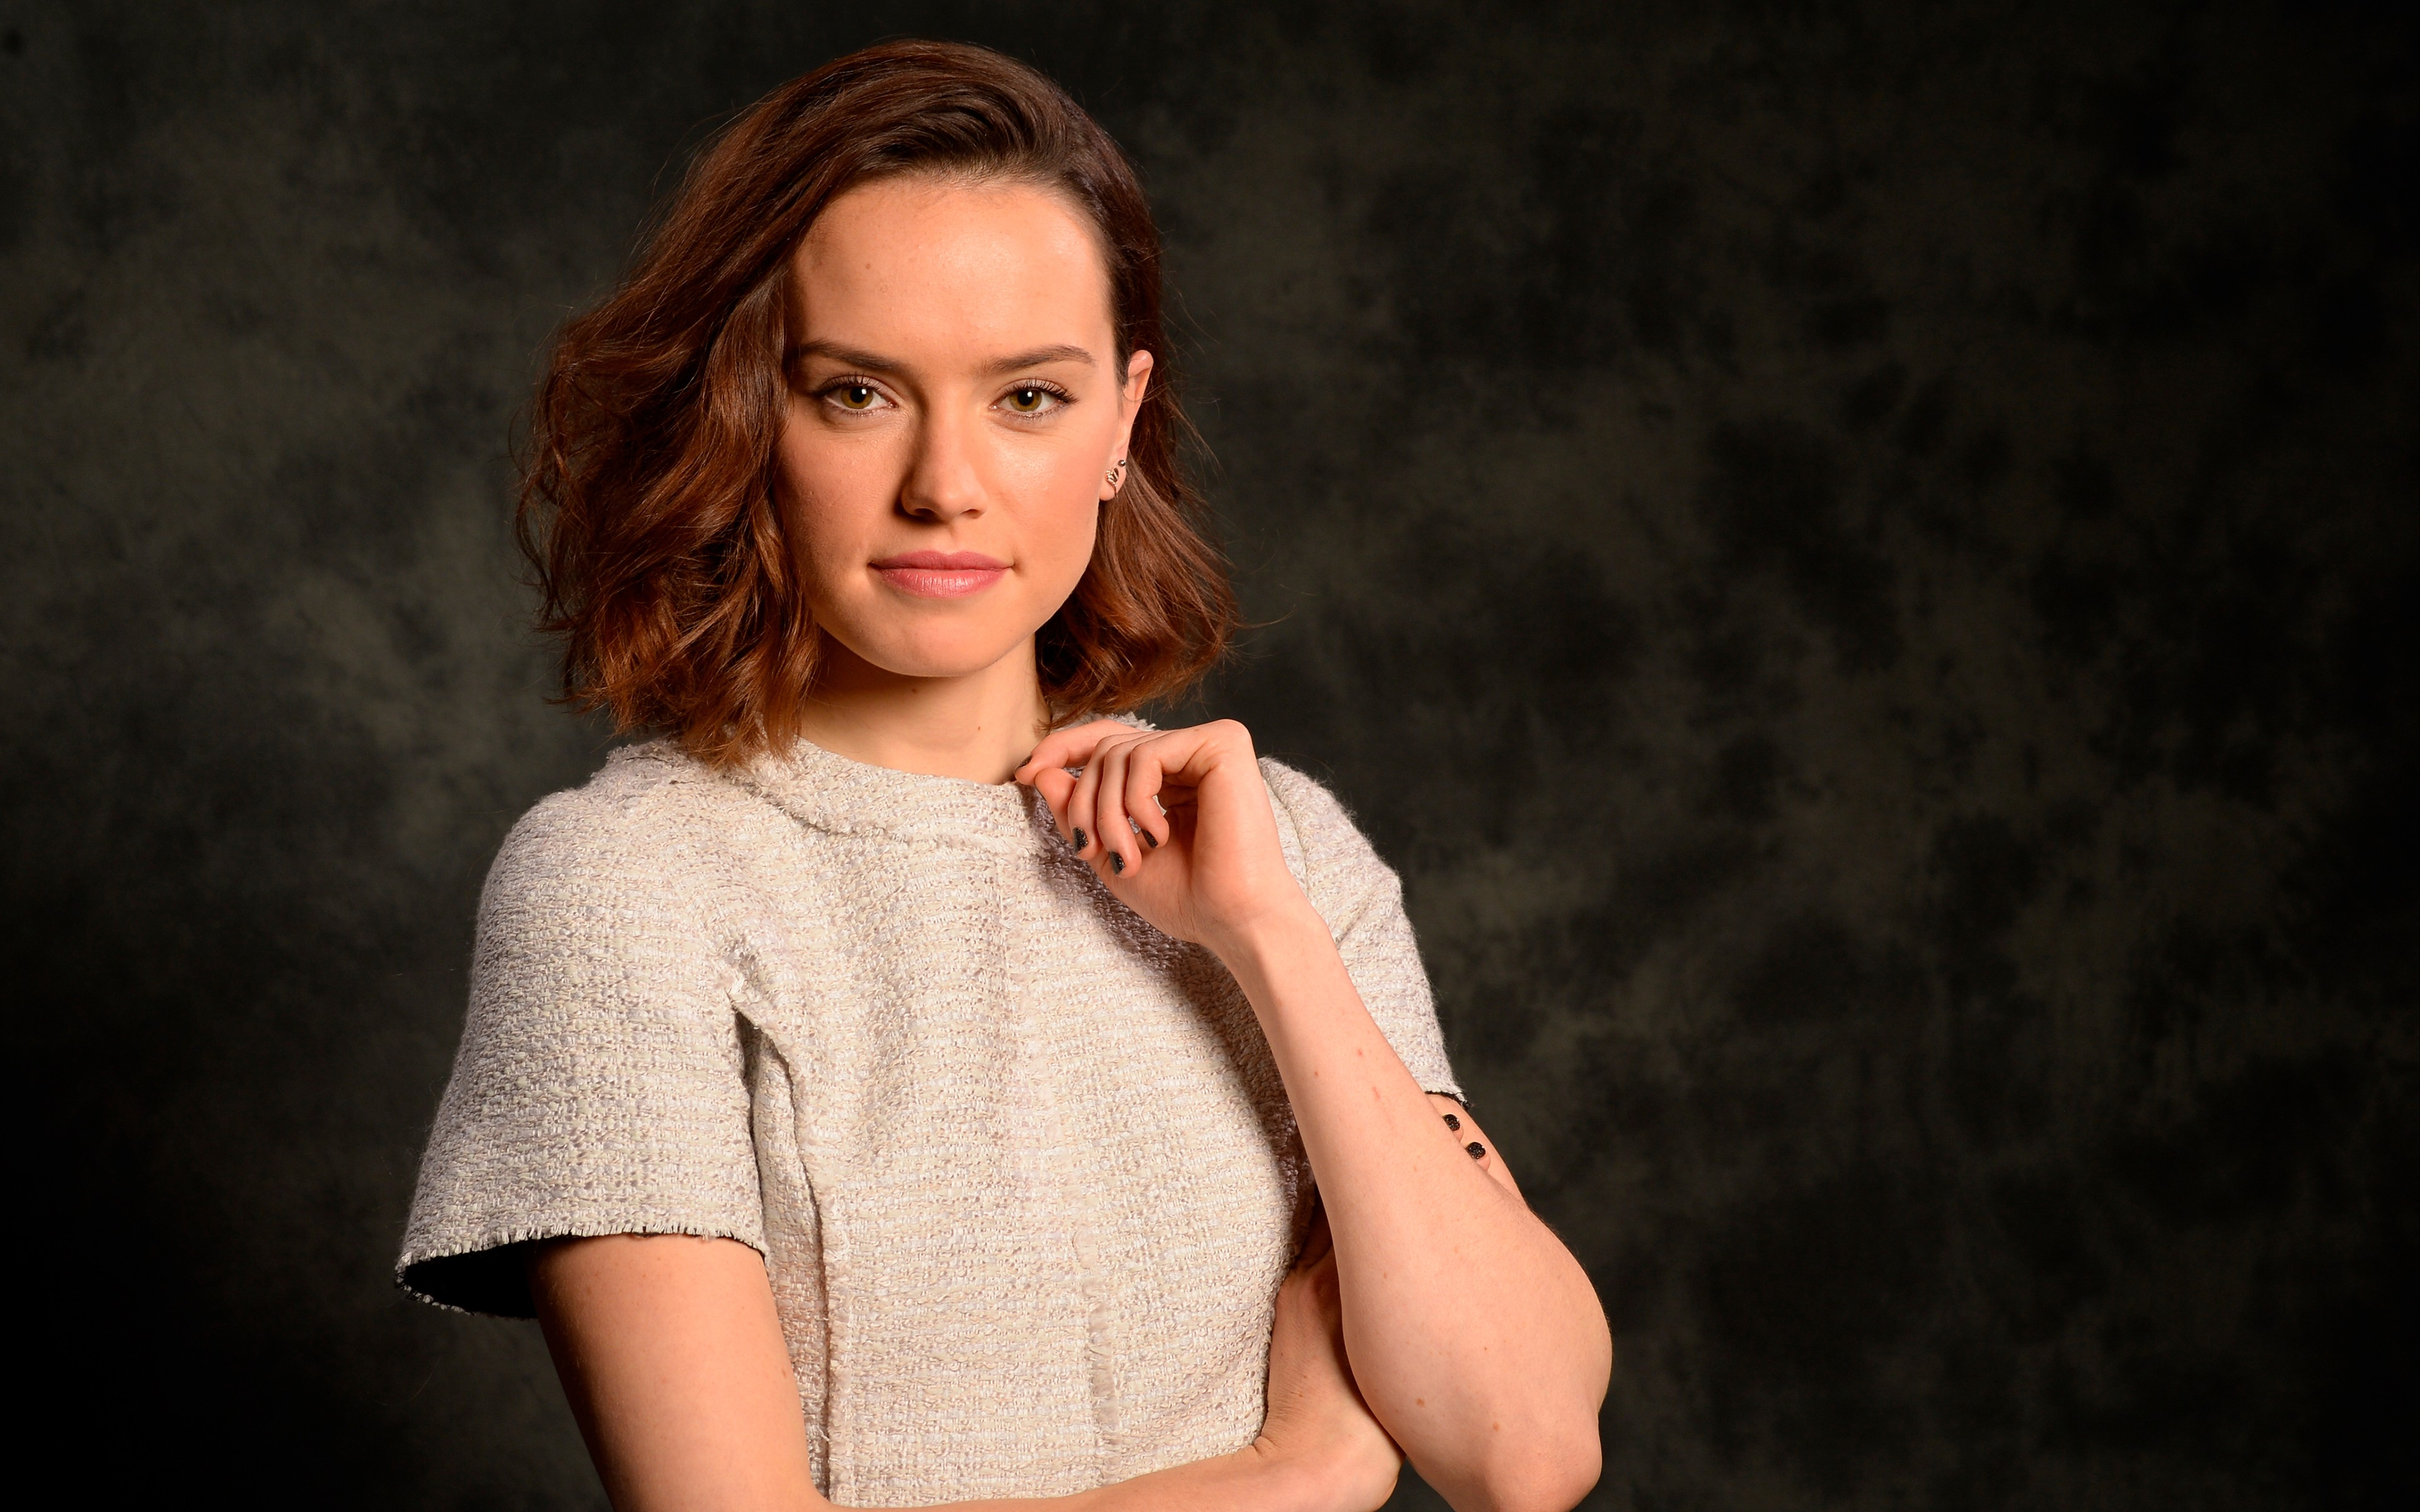 Photo Collection Daisy Ridley Wallpapers : daisy ridley celebrity wide from flashlarevista.com size 3840 x 2400 jpeg 1303kB